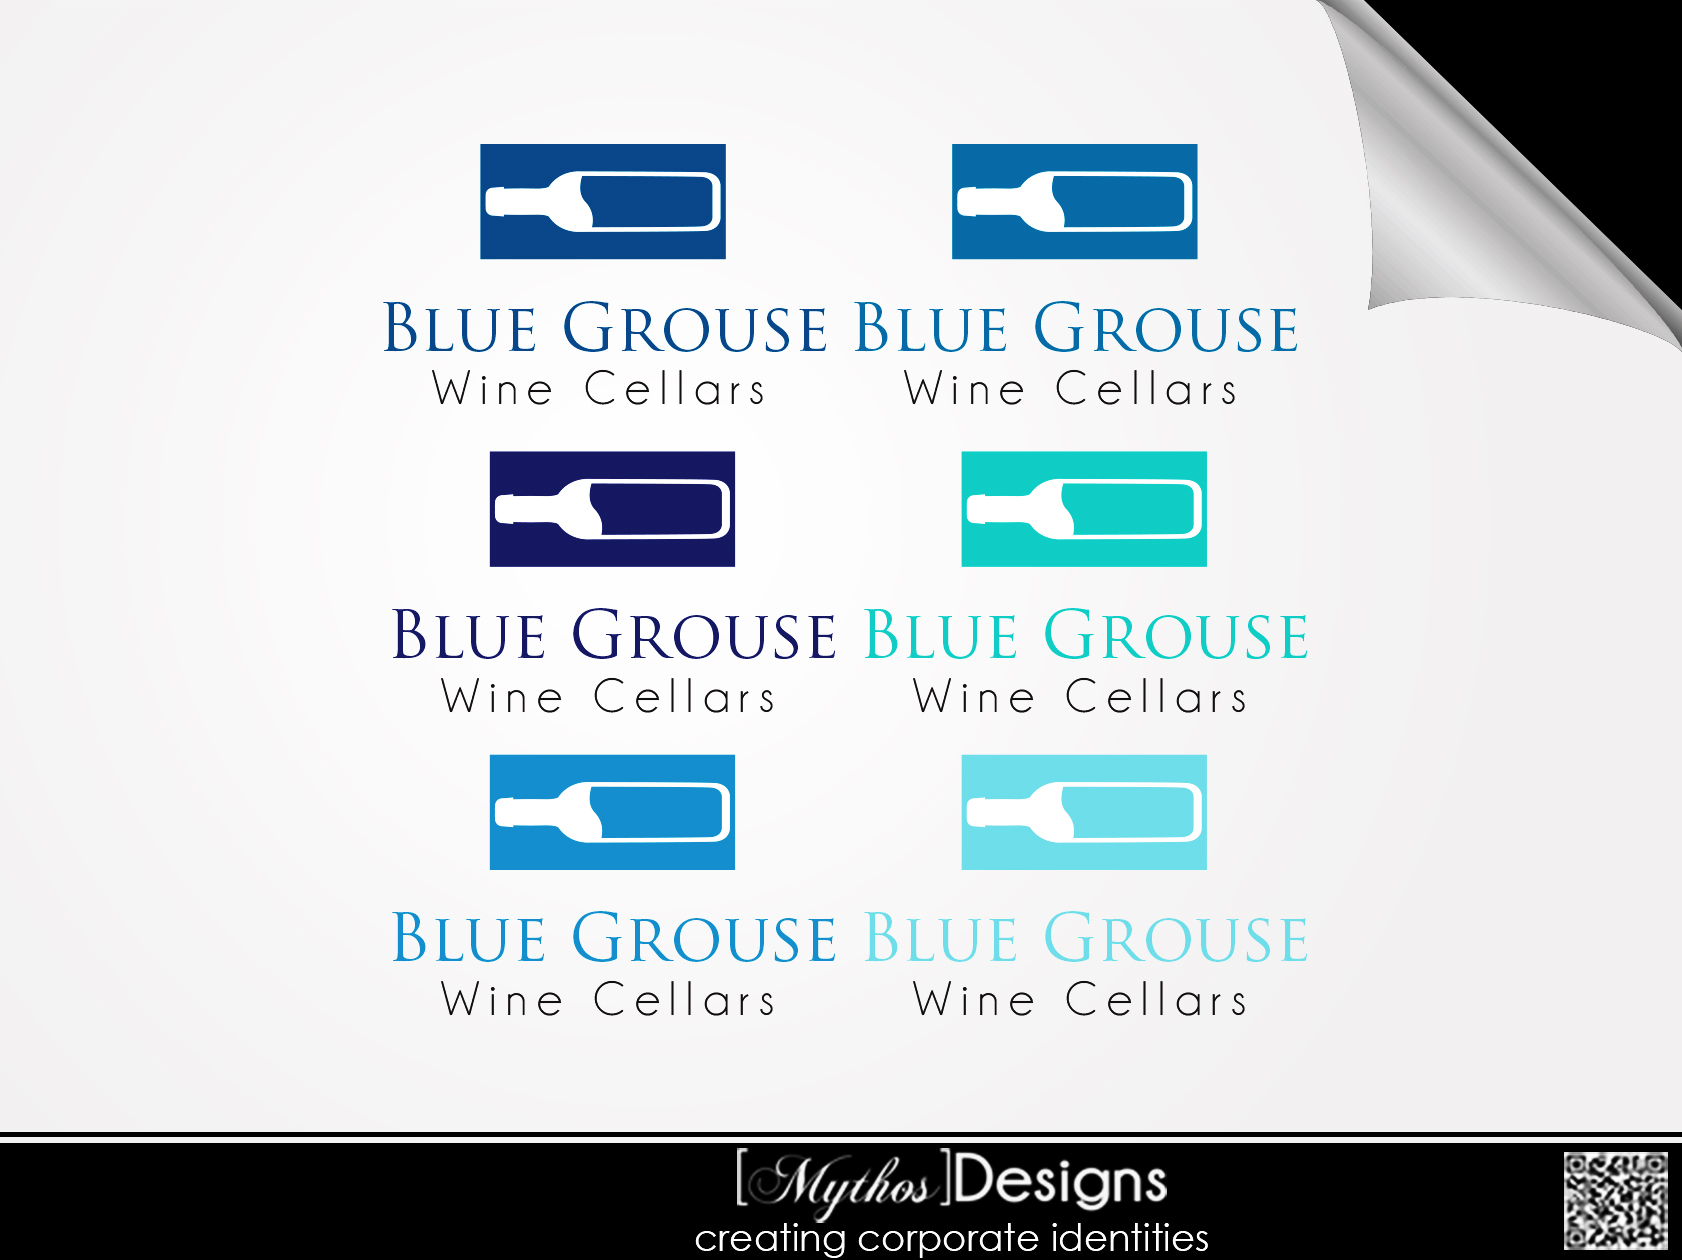 Logo Design by Mythos Designs - Entry No. 13 in the Logo Design Contest Creative Logo Design for Blue Grouse Wine Cellars.